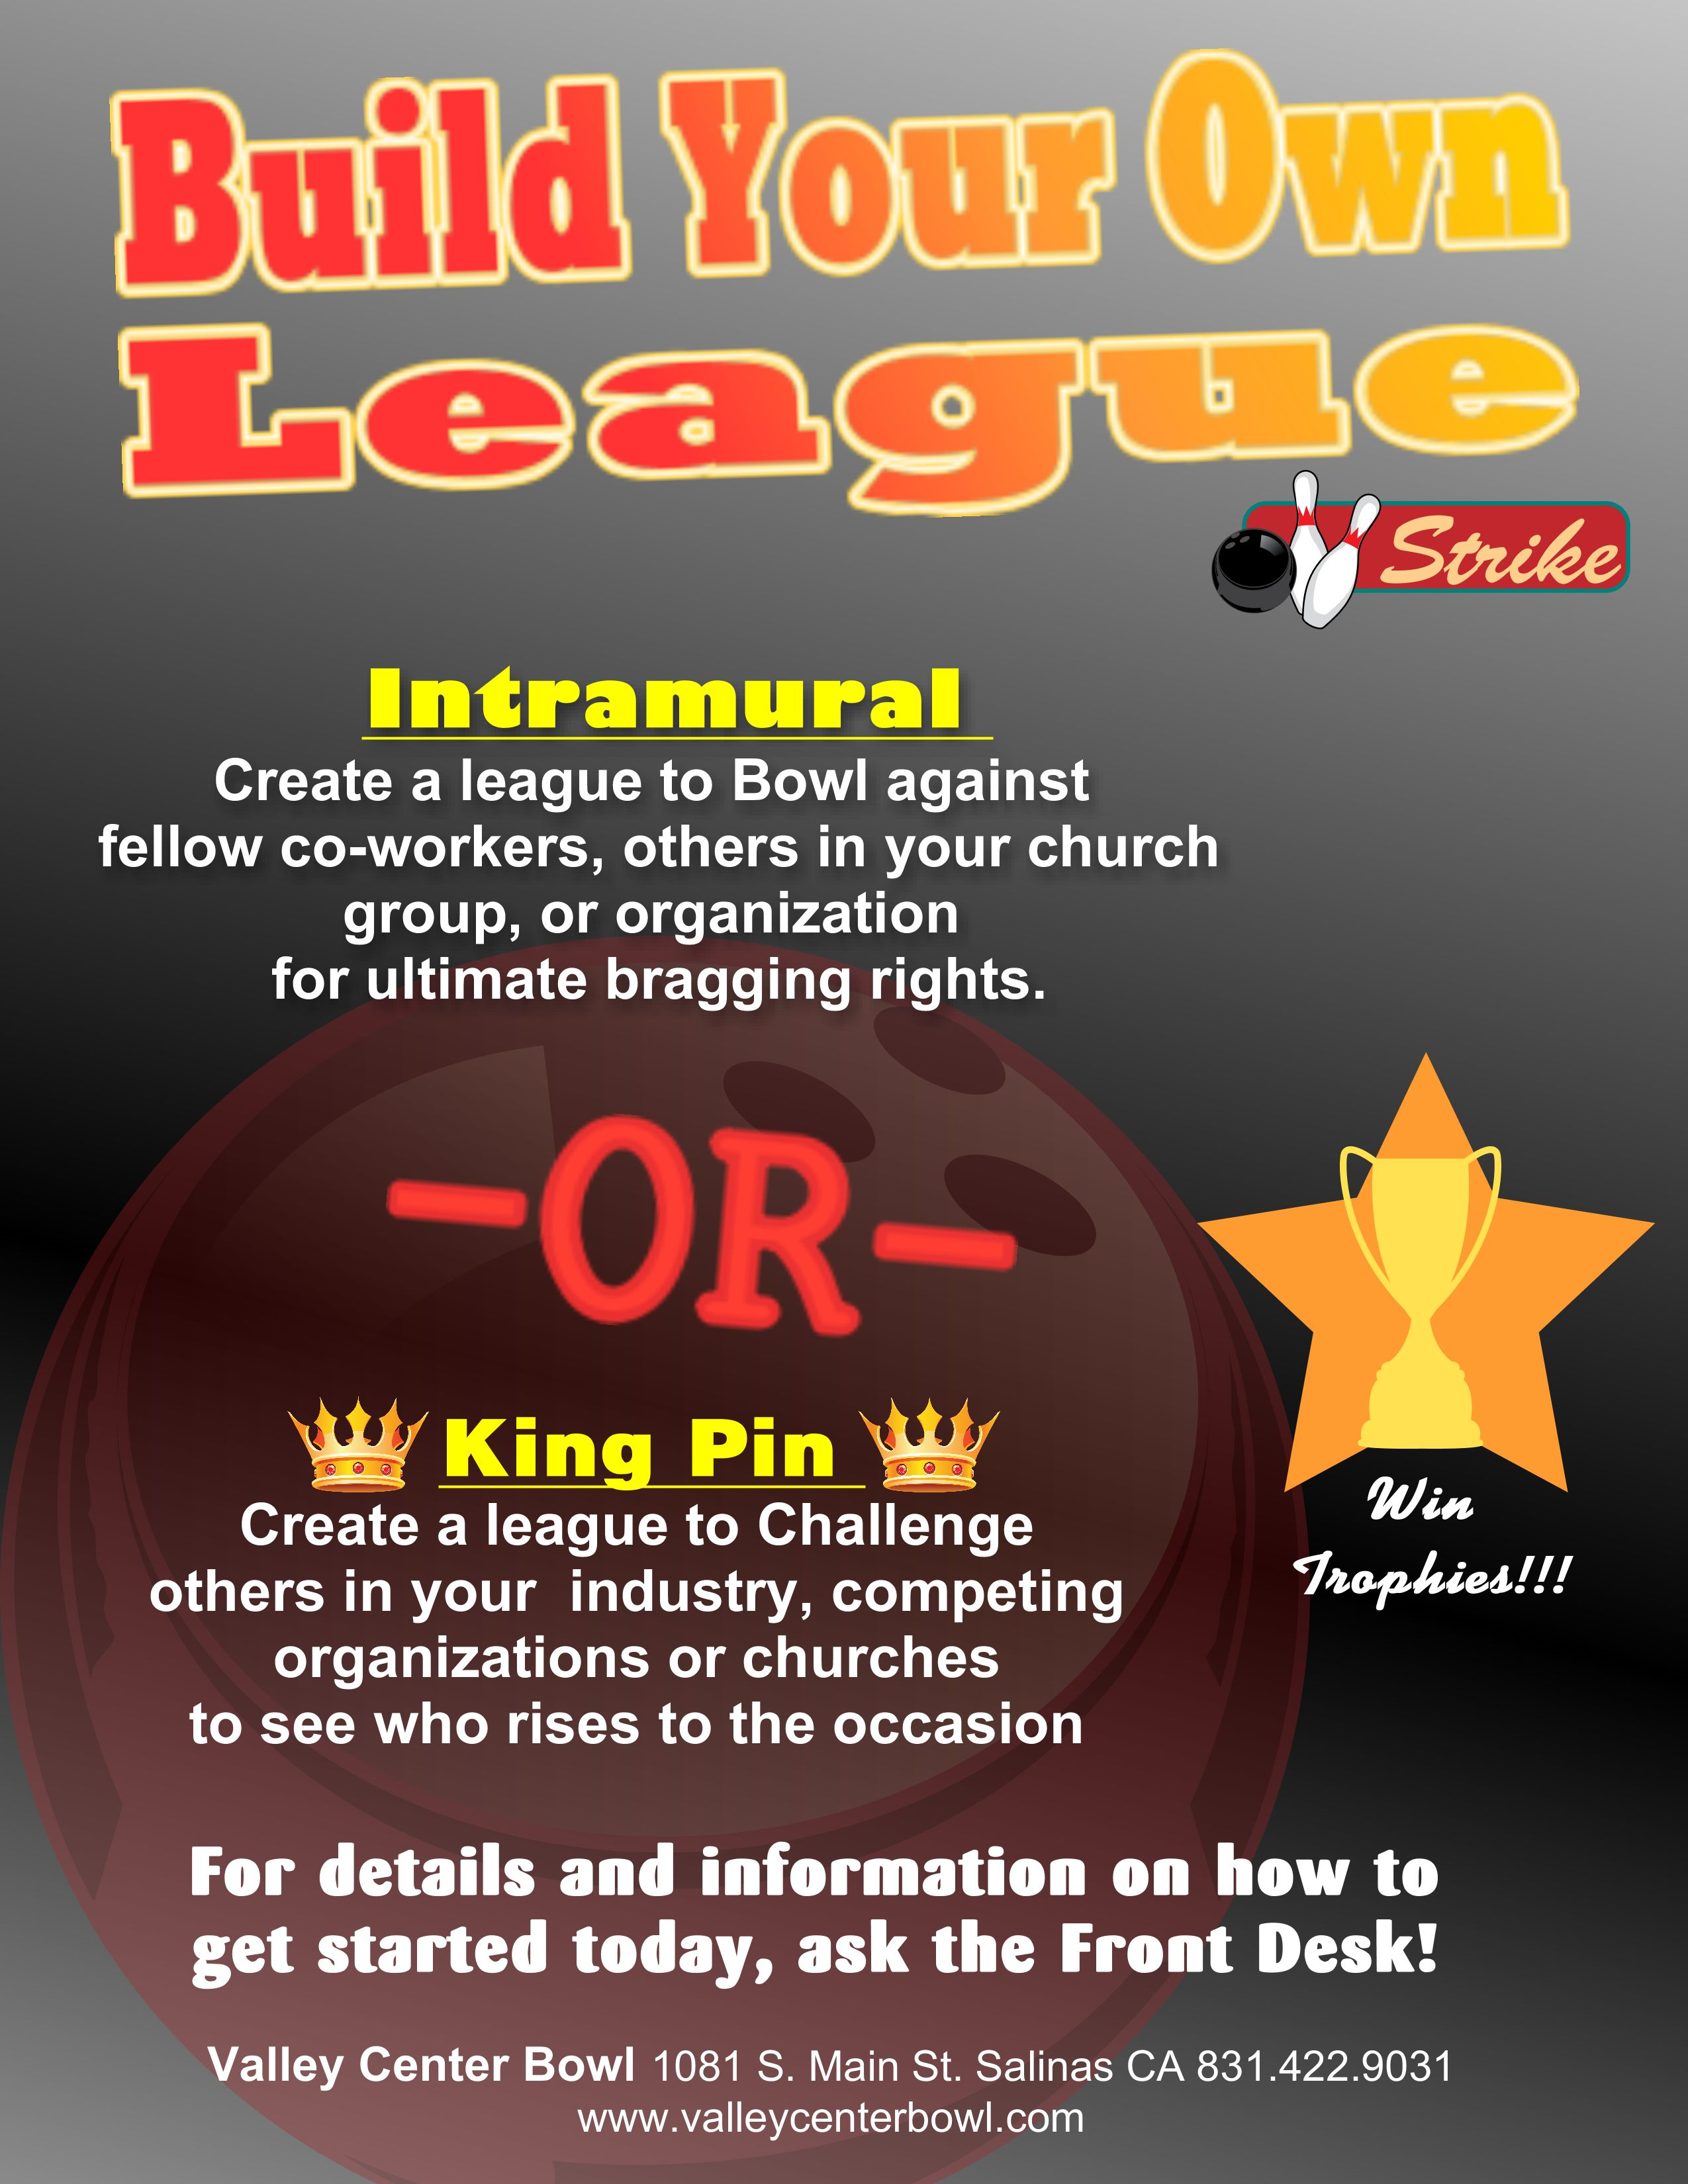 Build Your Own Leage Table Tent Bowling Alley Salinas California - Create table tents